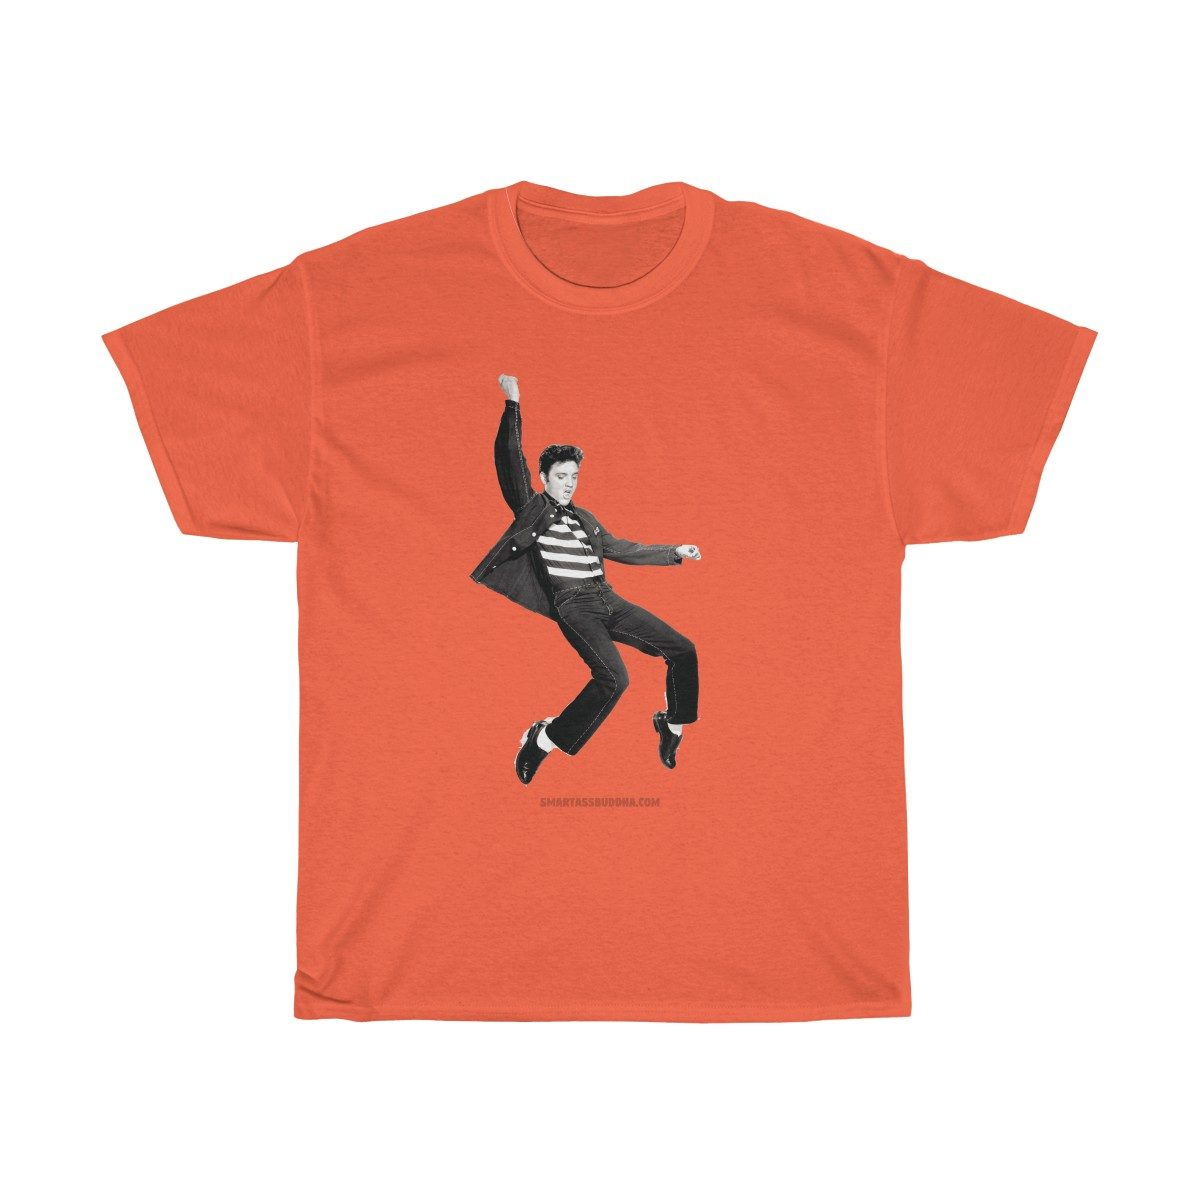 Positive-tshirt-gifts-for-her-women-men-dad-mom-him-funny-sayings- men-quotes-vintage-elvis-presley-jailhouse-rock-retro-funky-orange